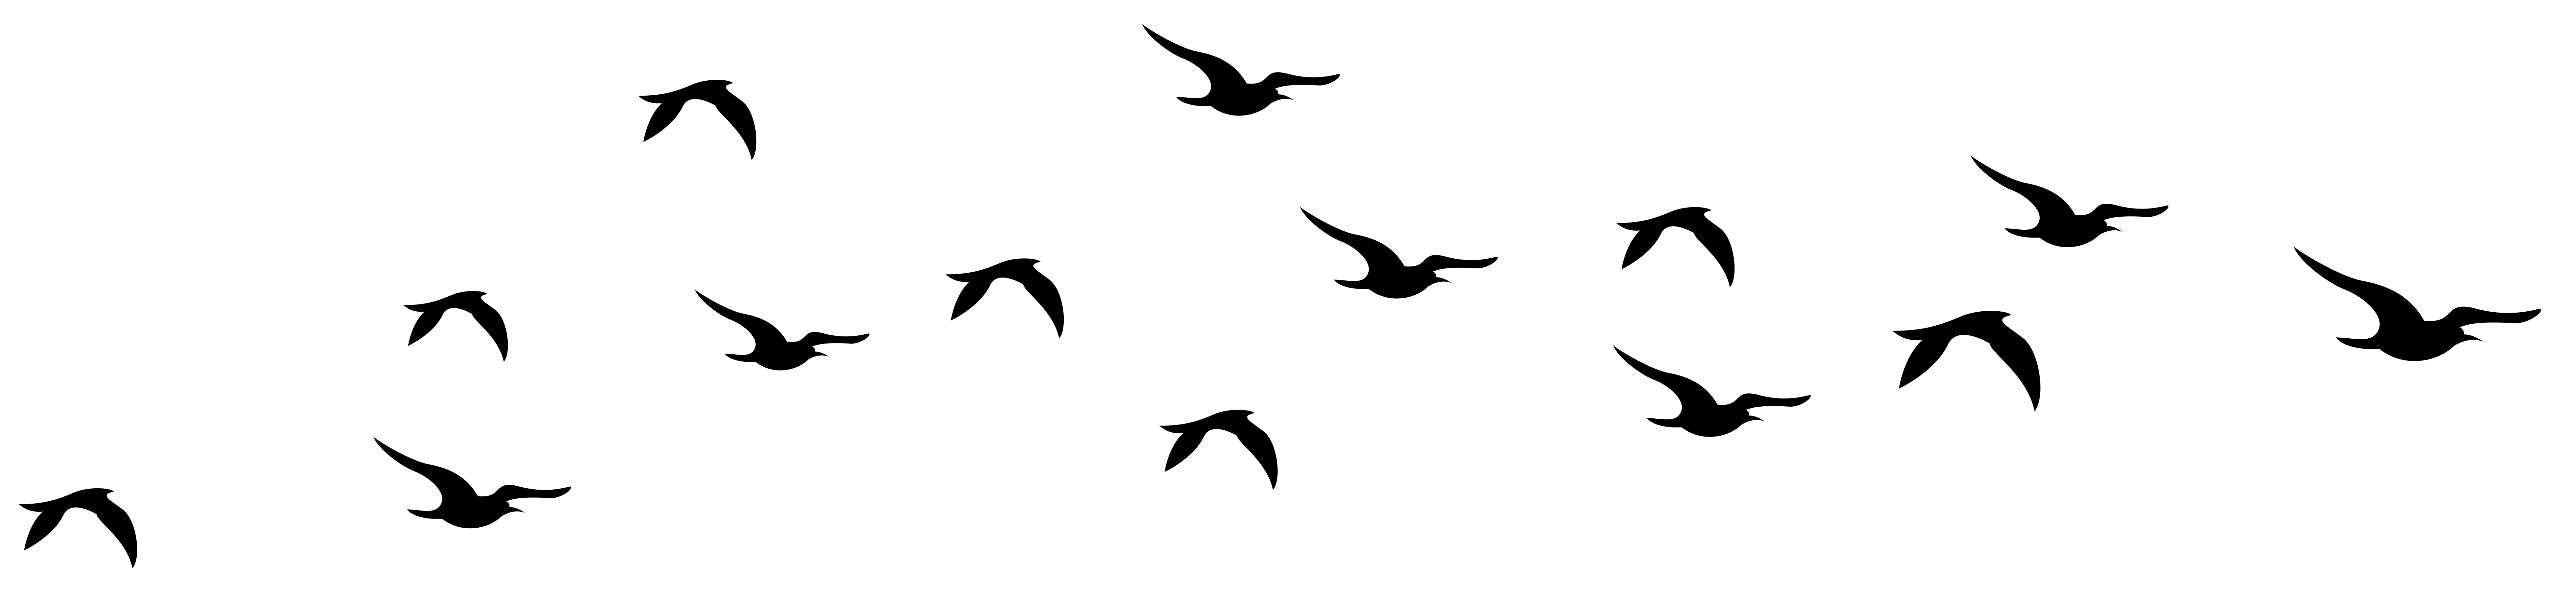 7919x1829 Dumbo Flying With Birds Png